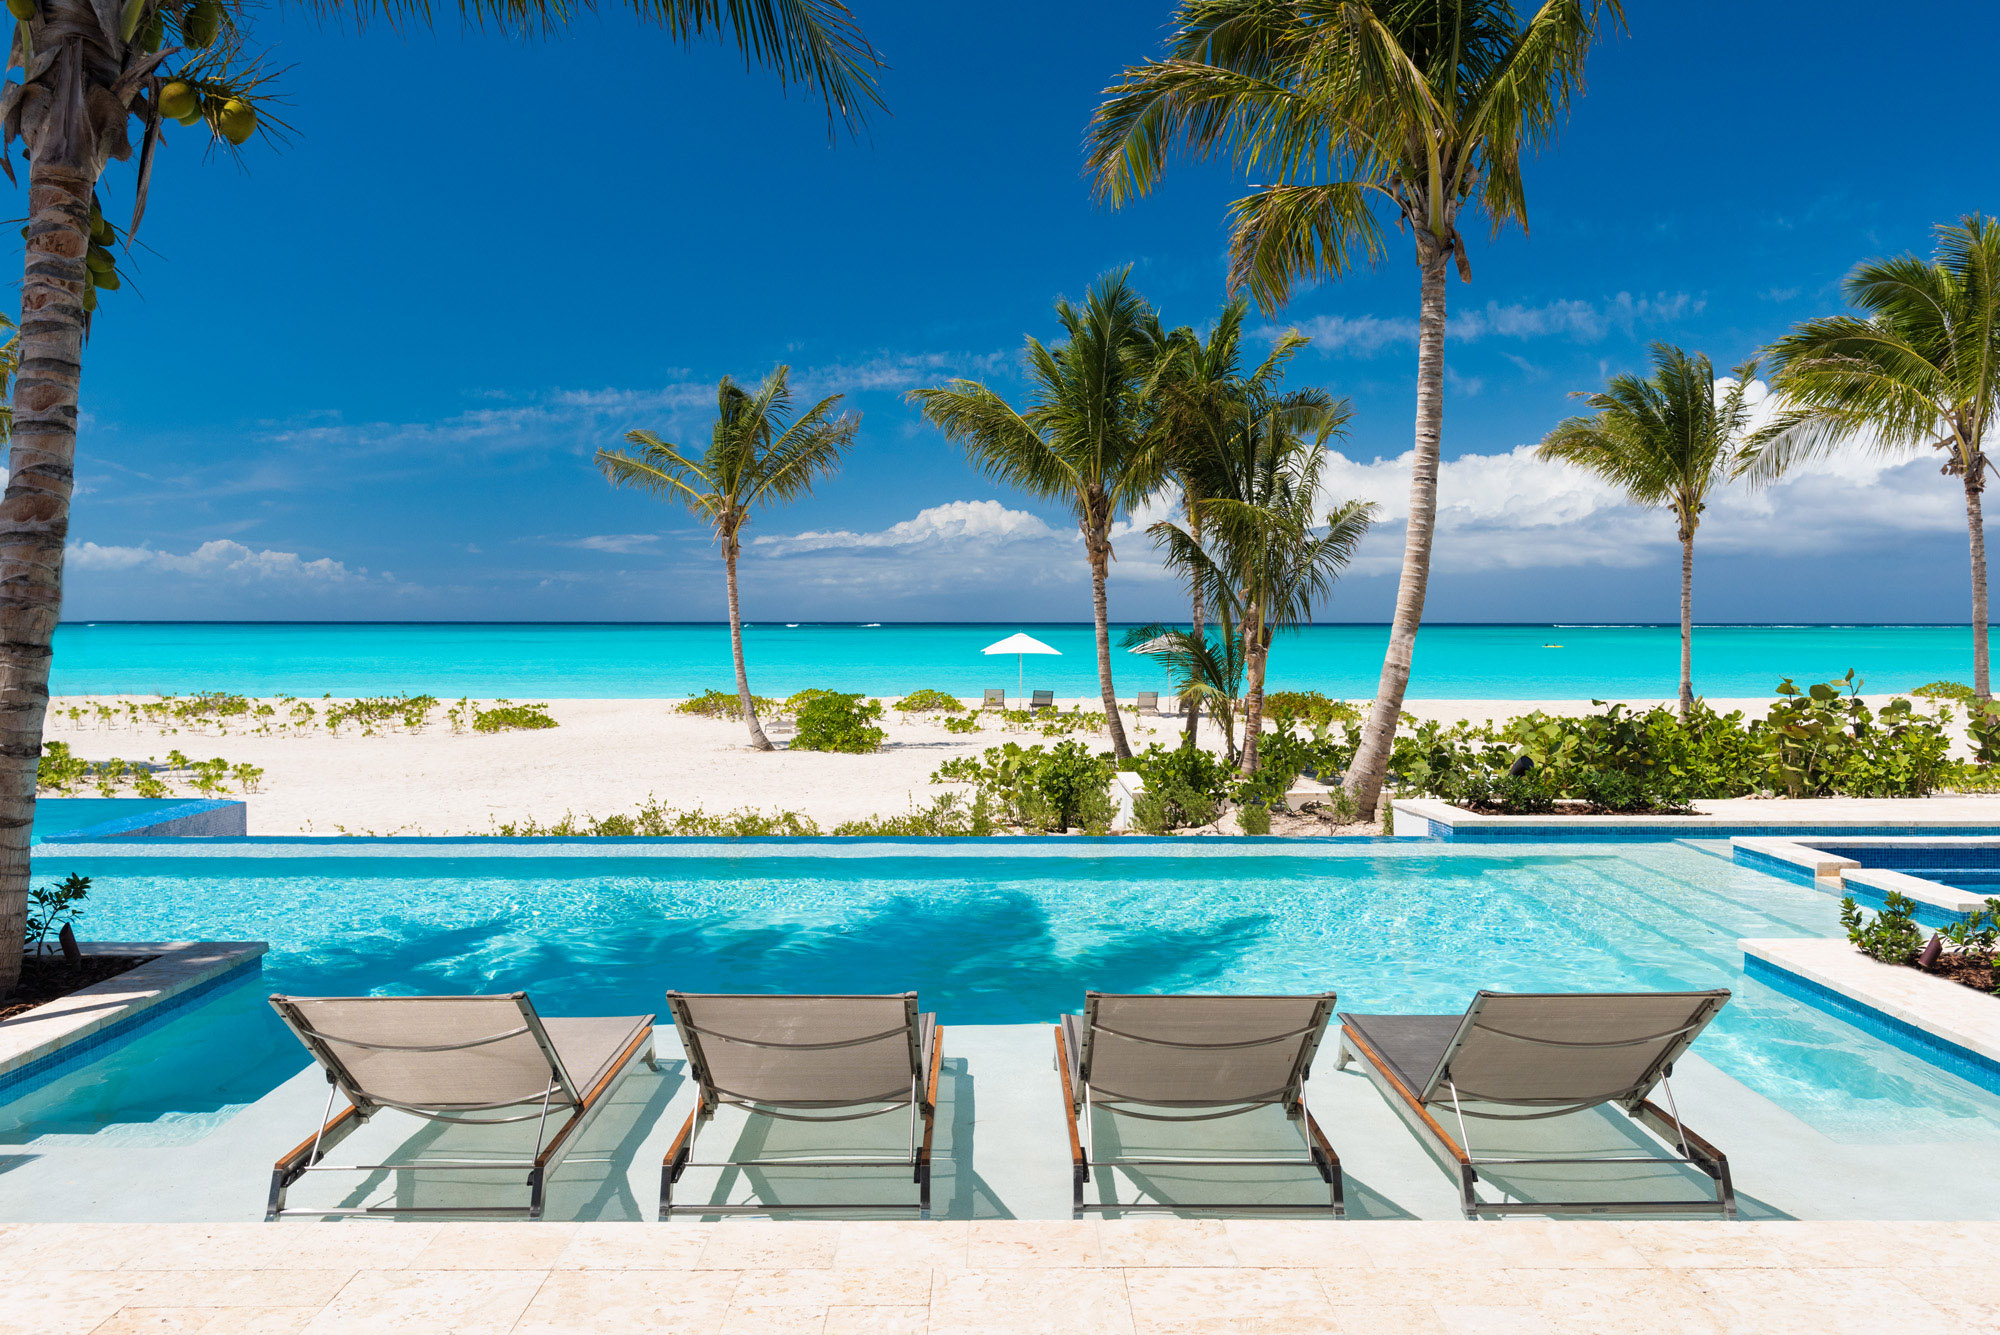 Hawksbill - view of the pool and beach